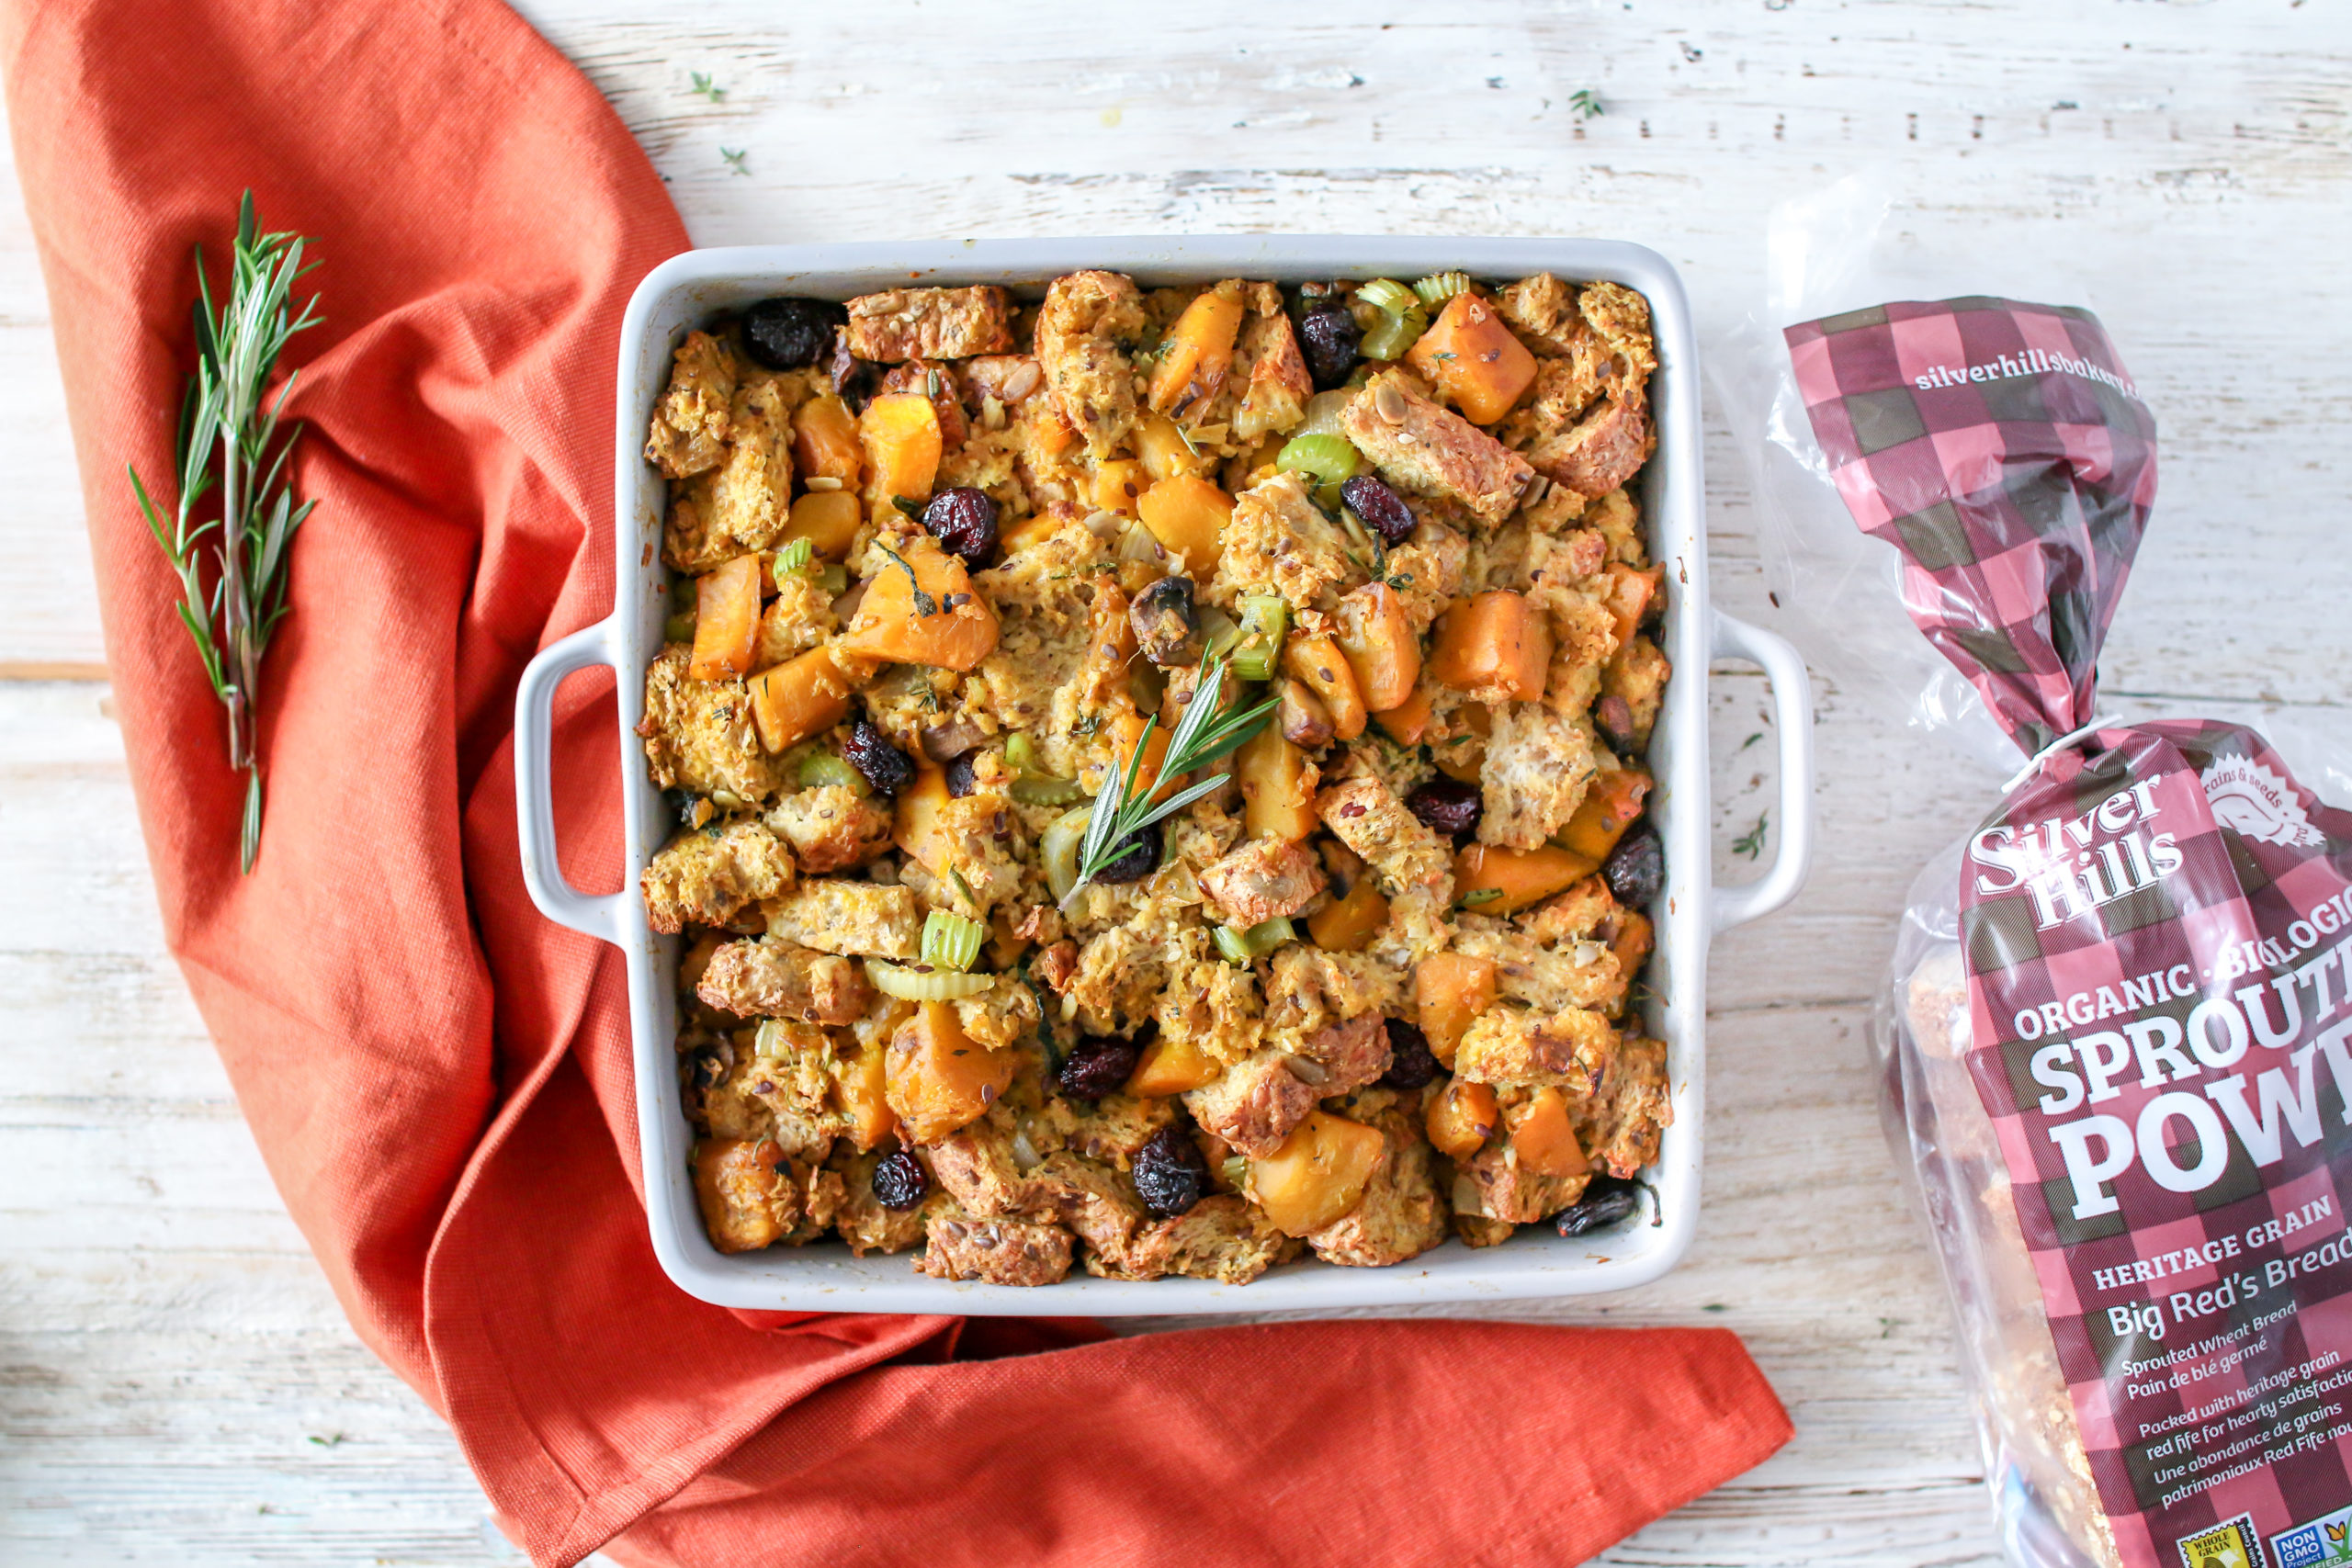 It's no secret that stuffing is a favourite at the Thanksgiving dinner table. With a flavour profile that perfectly encompasses the fall season, it's a dish that most people have been waiting for all year round.